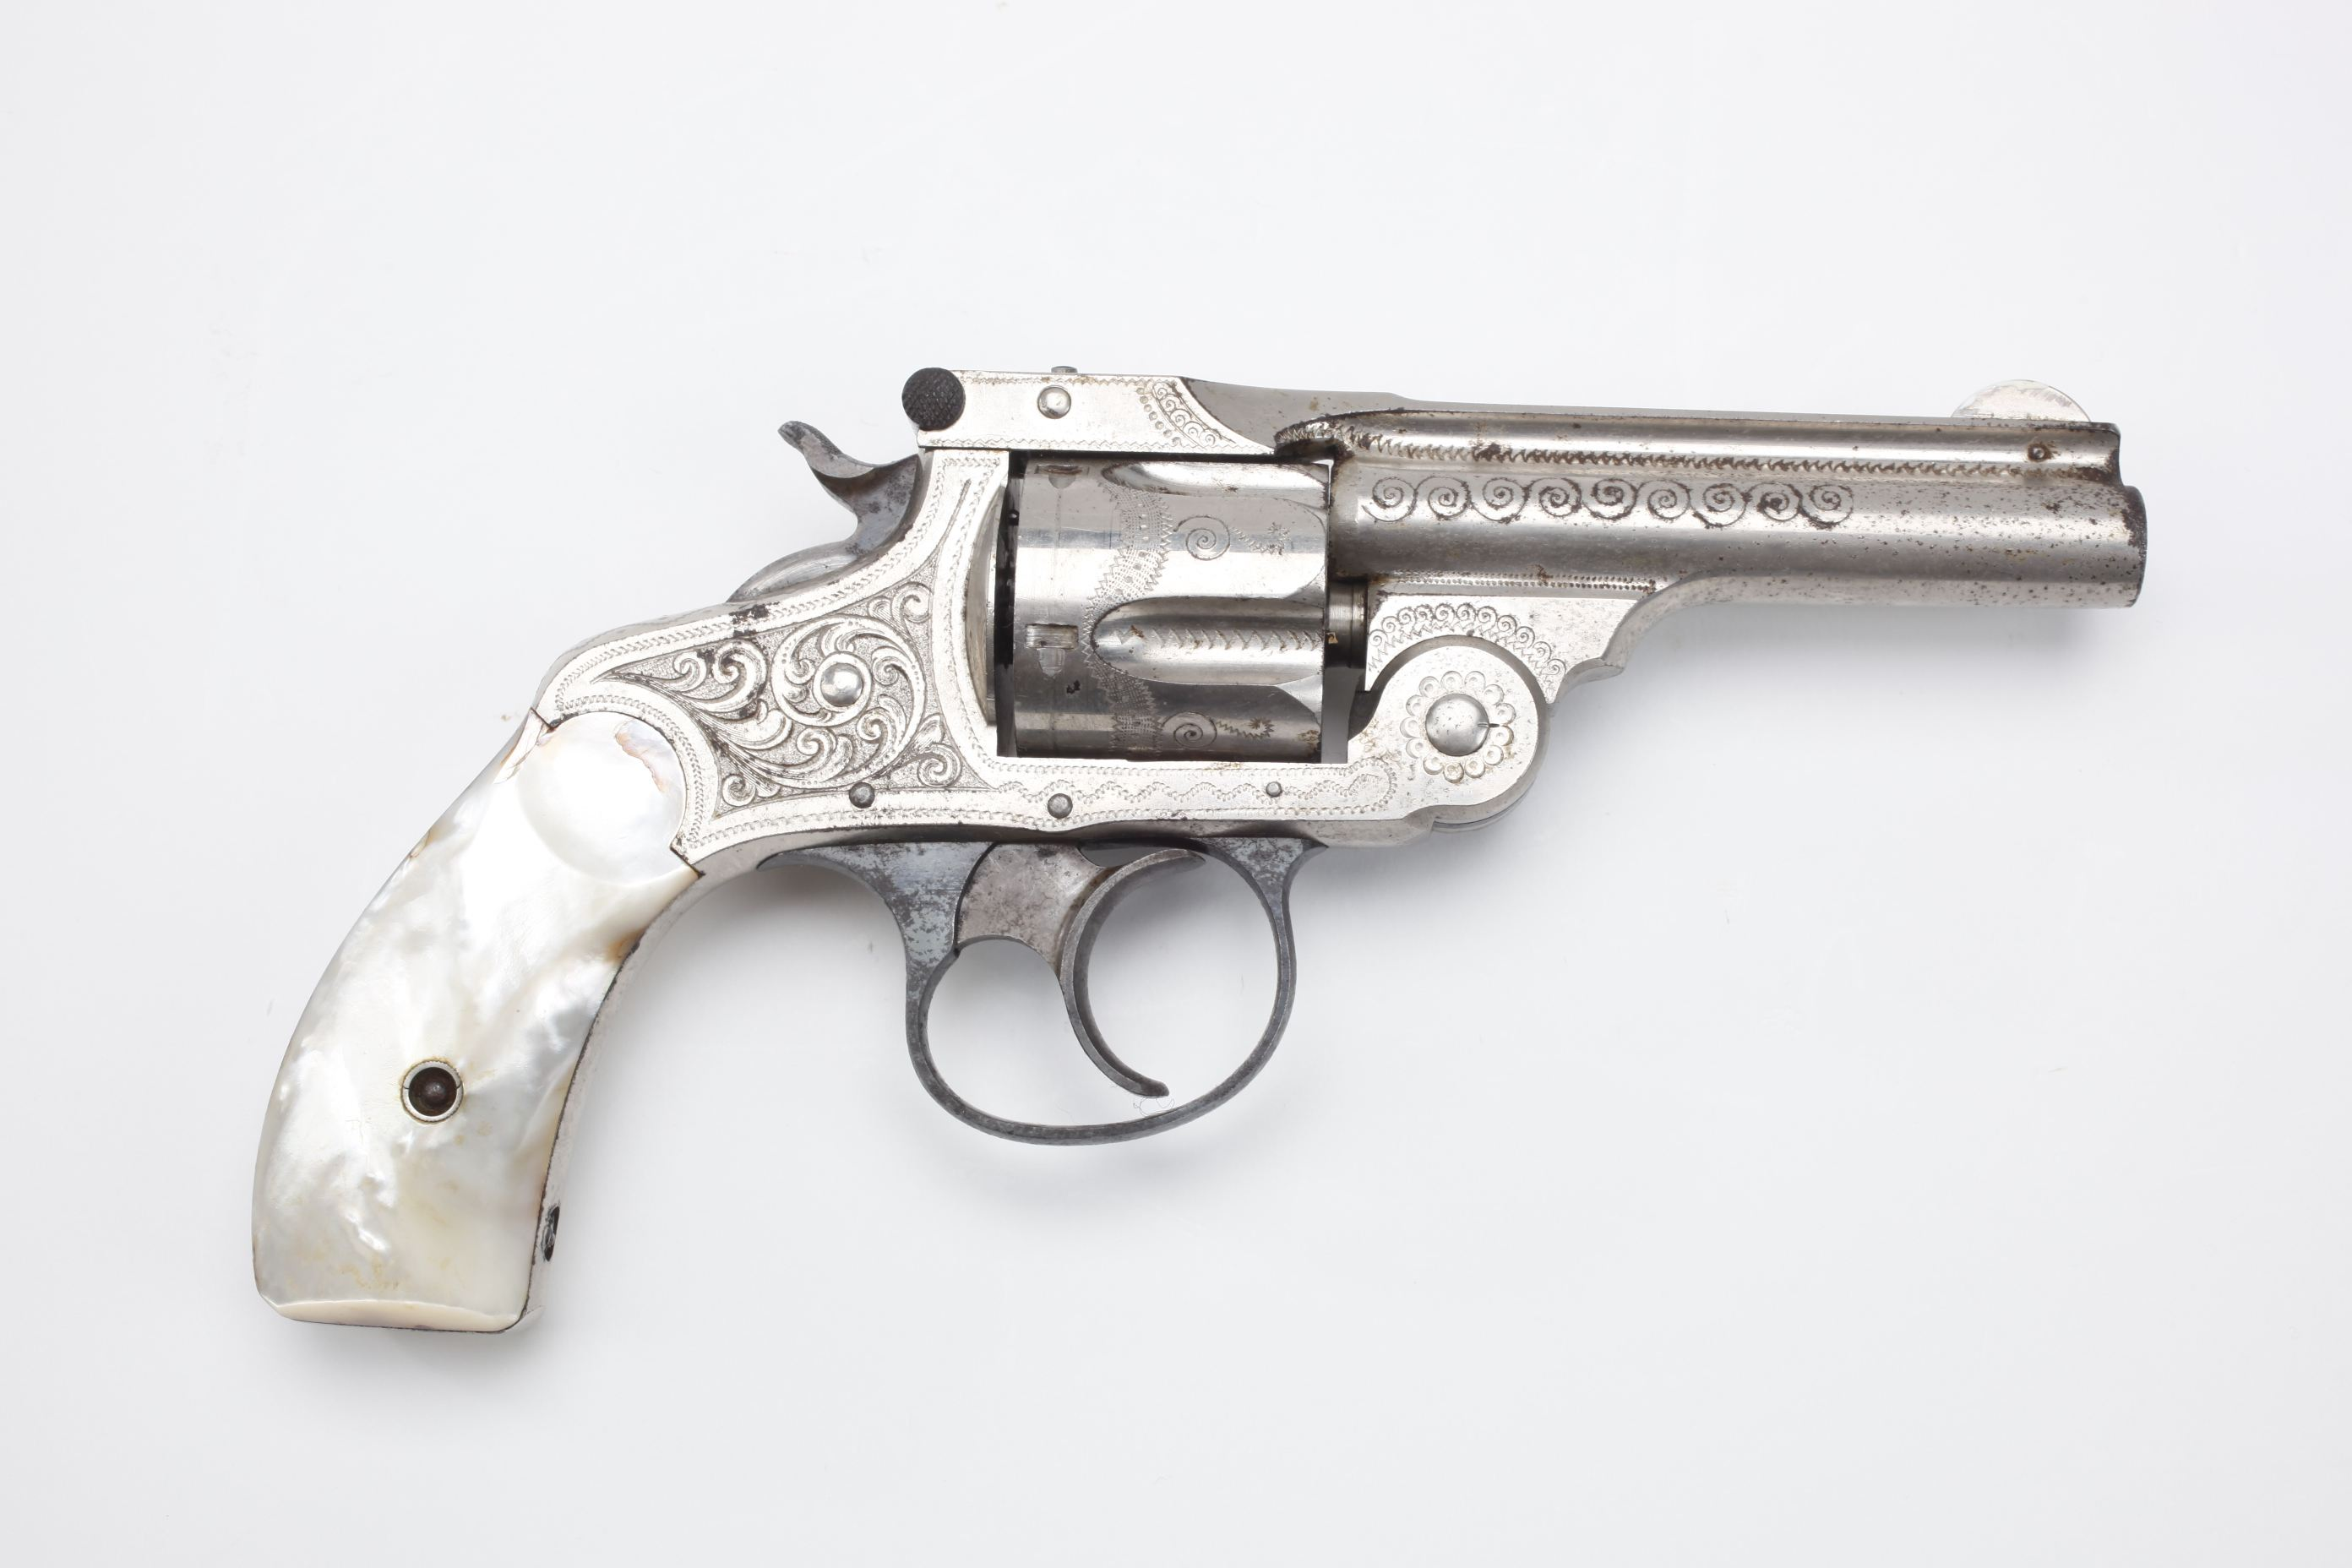 Marlin Model 1887 Top Break revolver